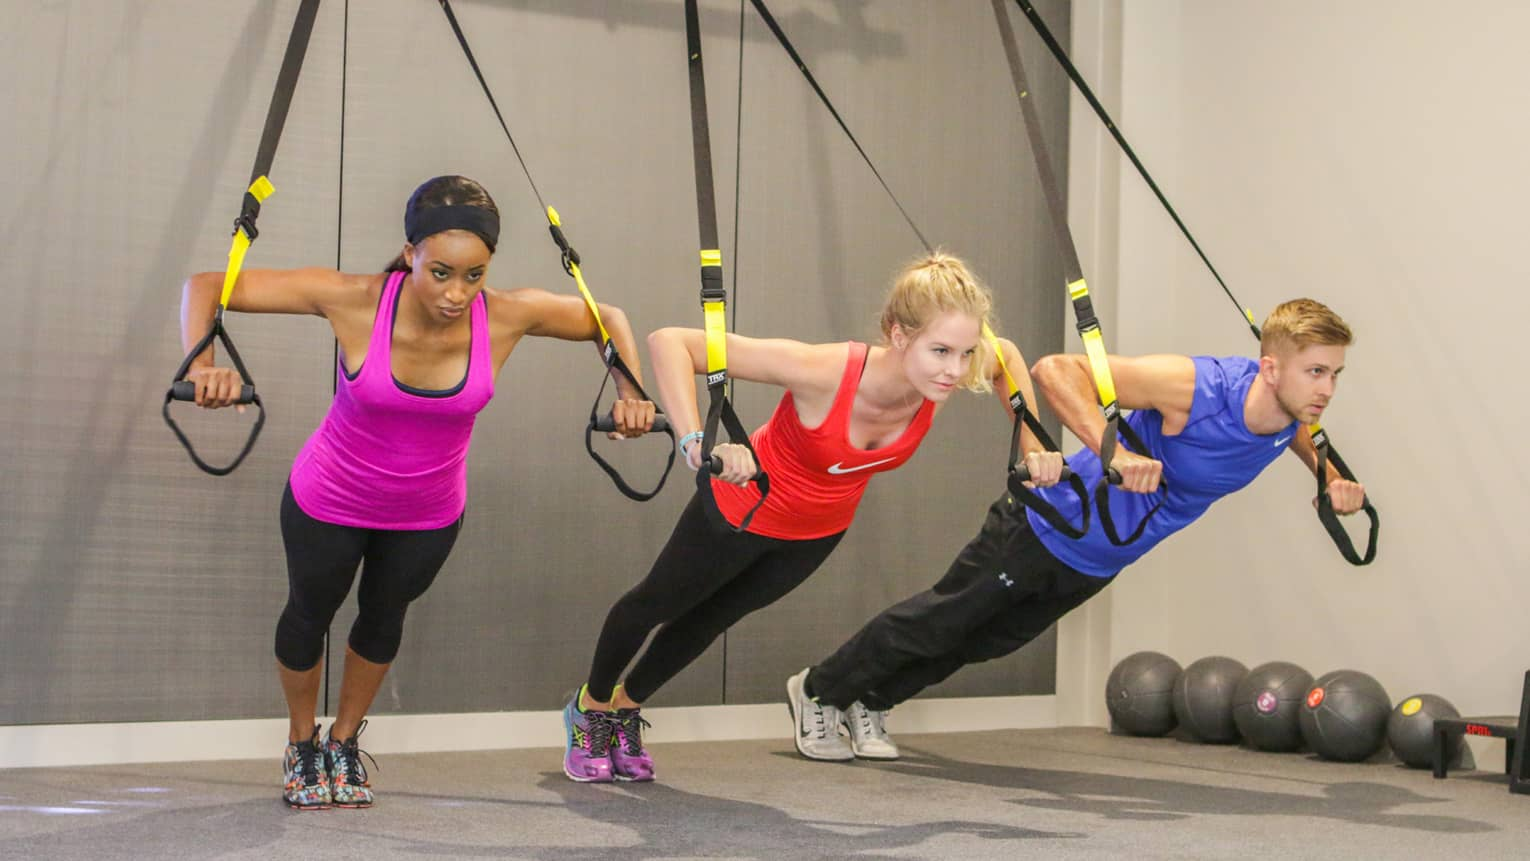 Three people in exercise clothes hold handles of pilates bands, hang forward in Fitness Centre